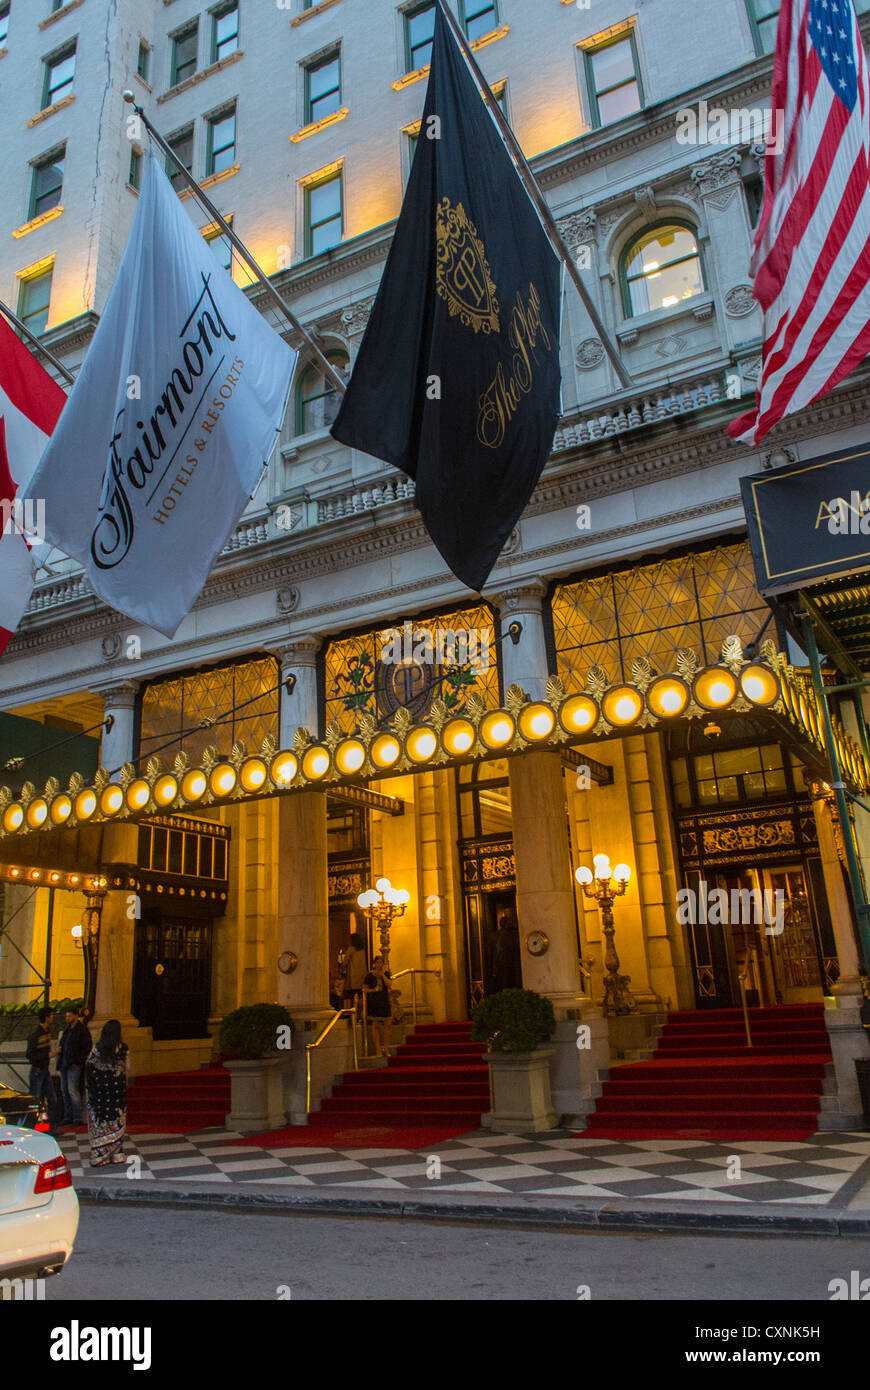 New York, Street Scenes, Outside, 5 star hotel entrance Front of the Plaza Hotel, Manhattan - Stock Image